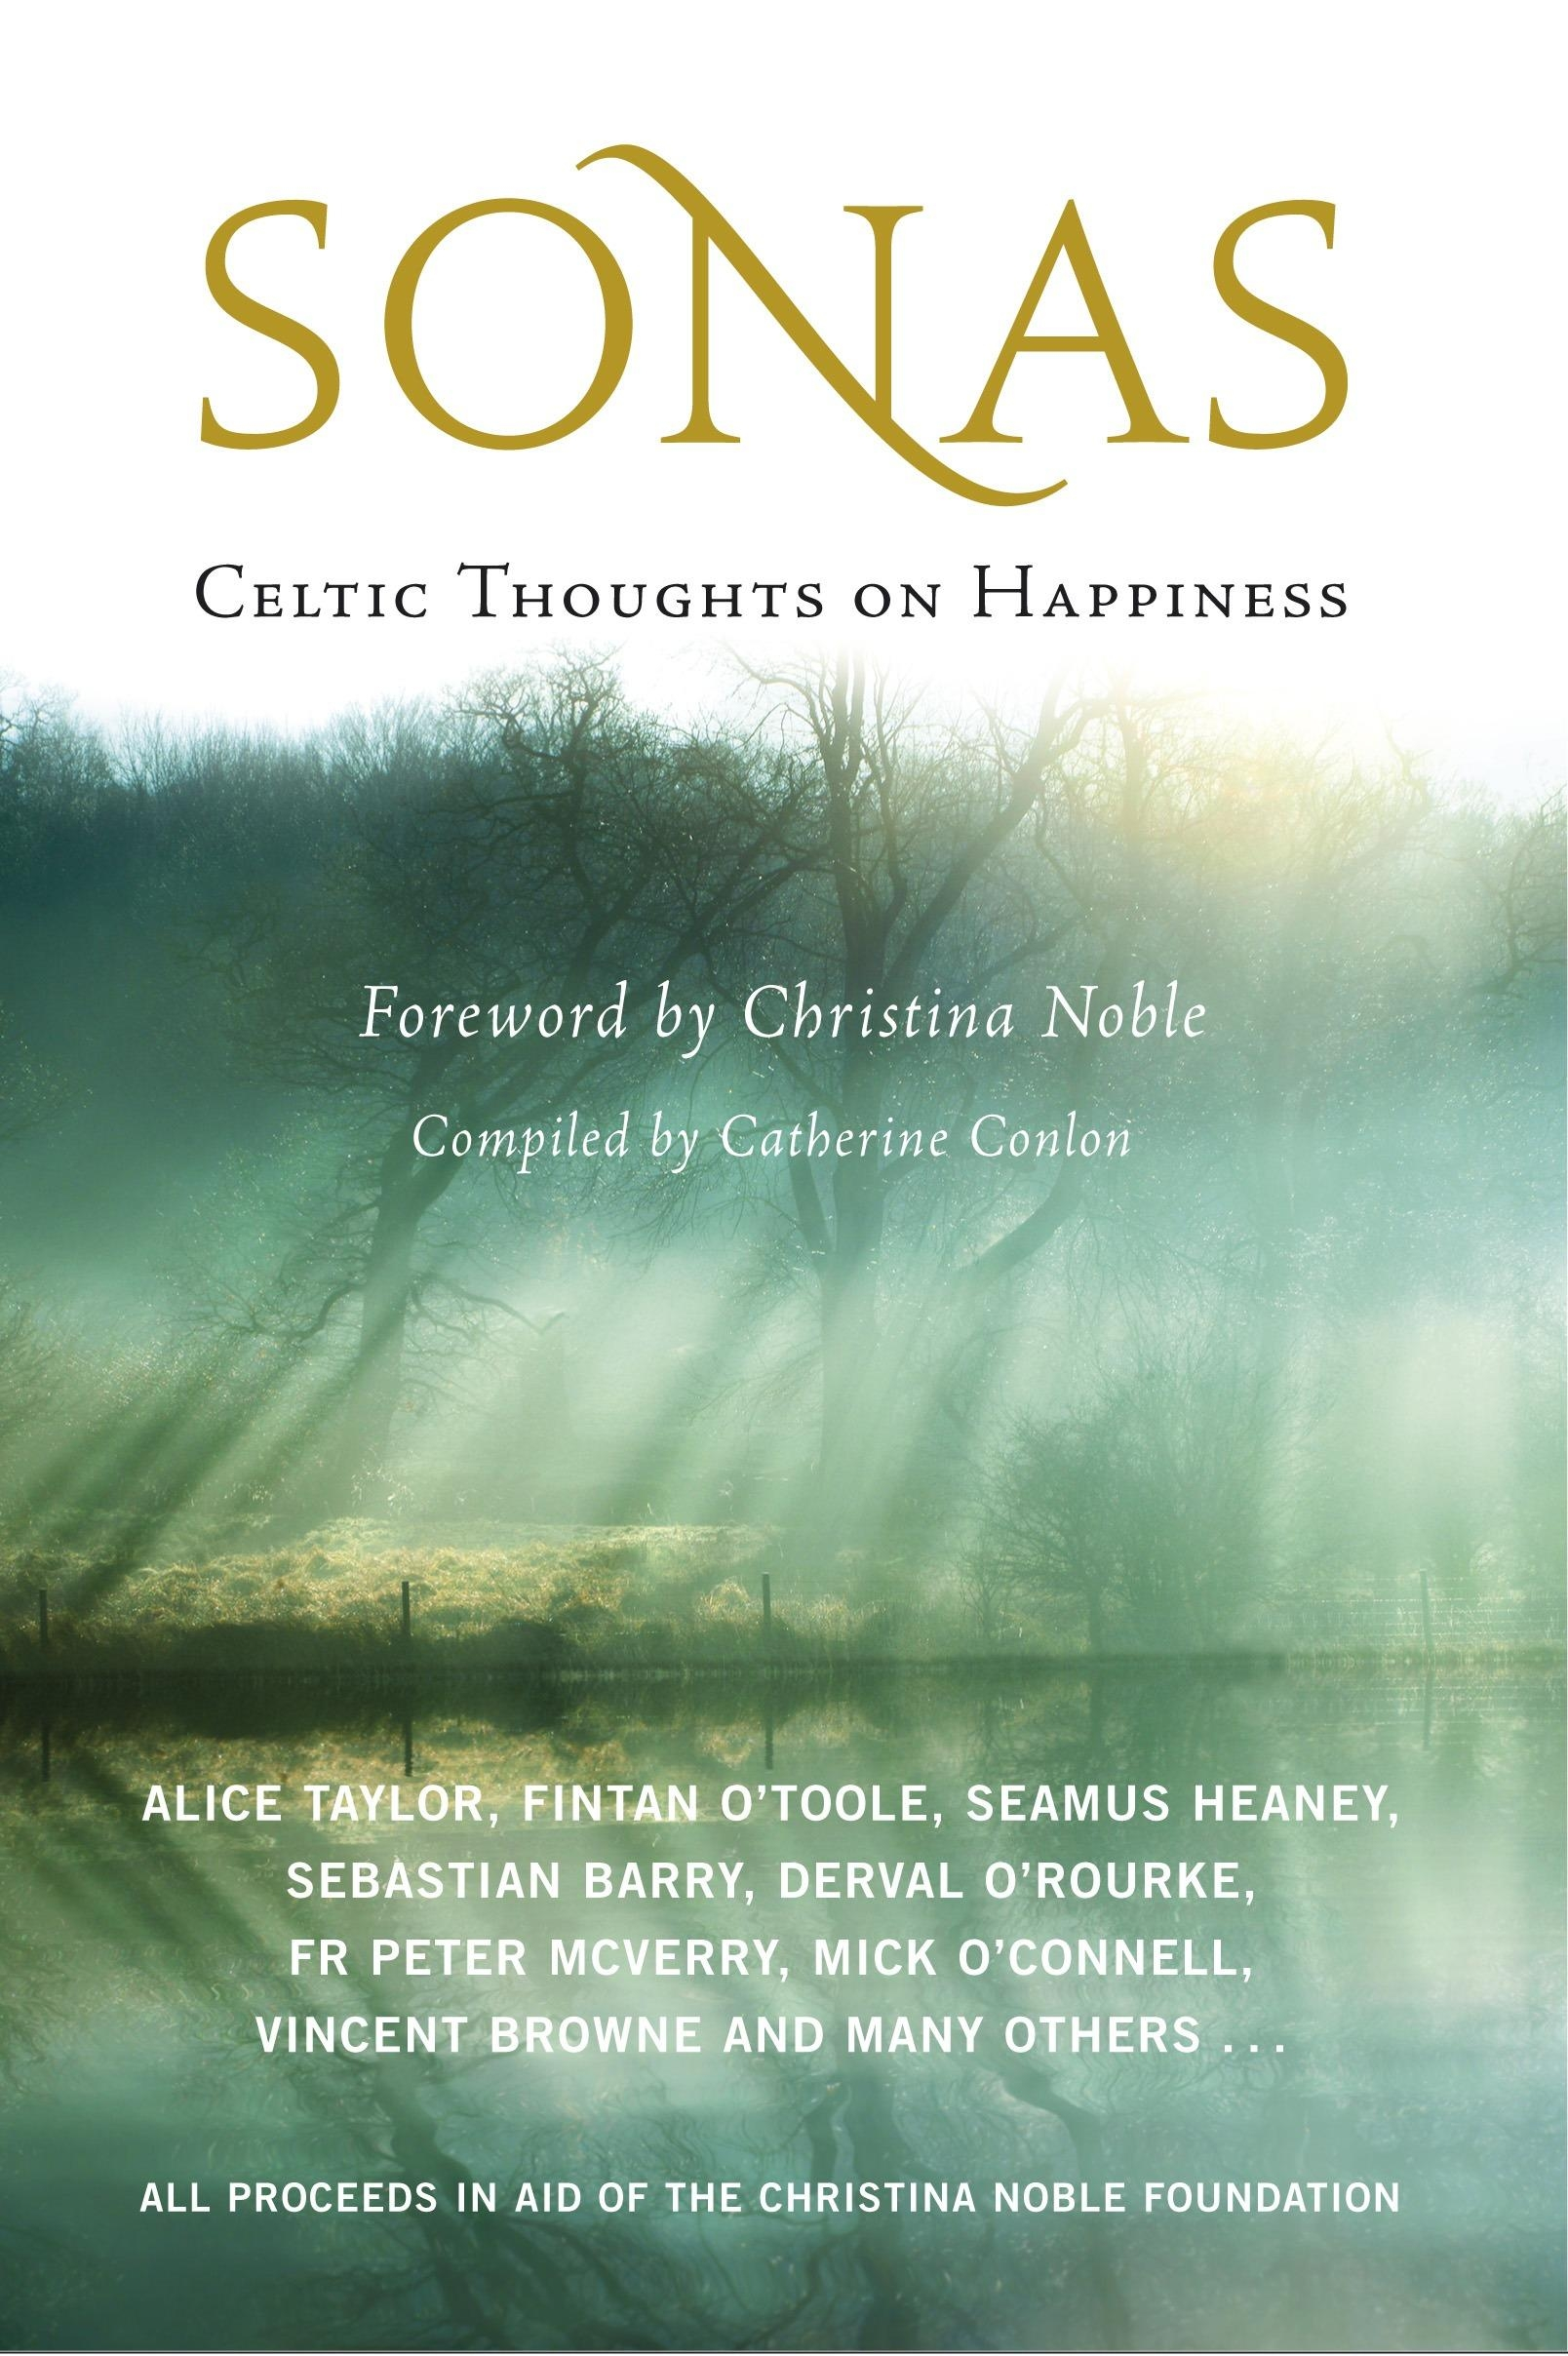 Sonas Celtic Thoughts On Happiness By Catherine Conlon Editor Hachette Uk